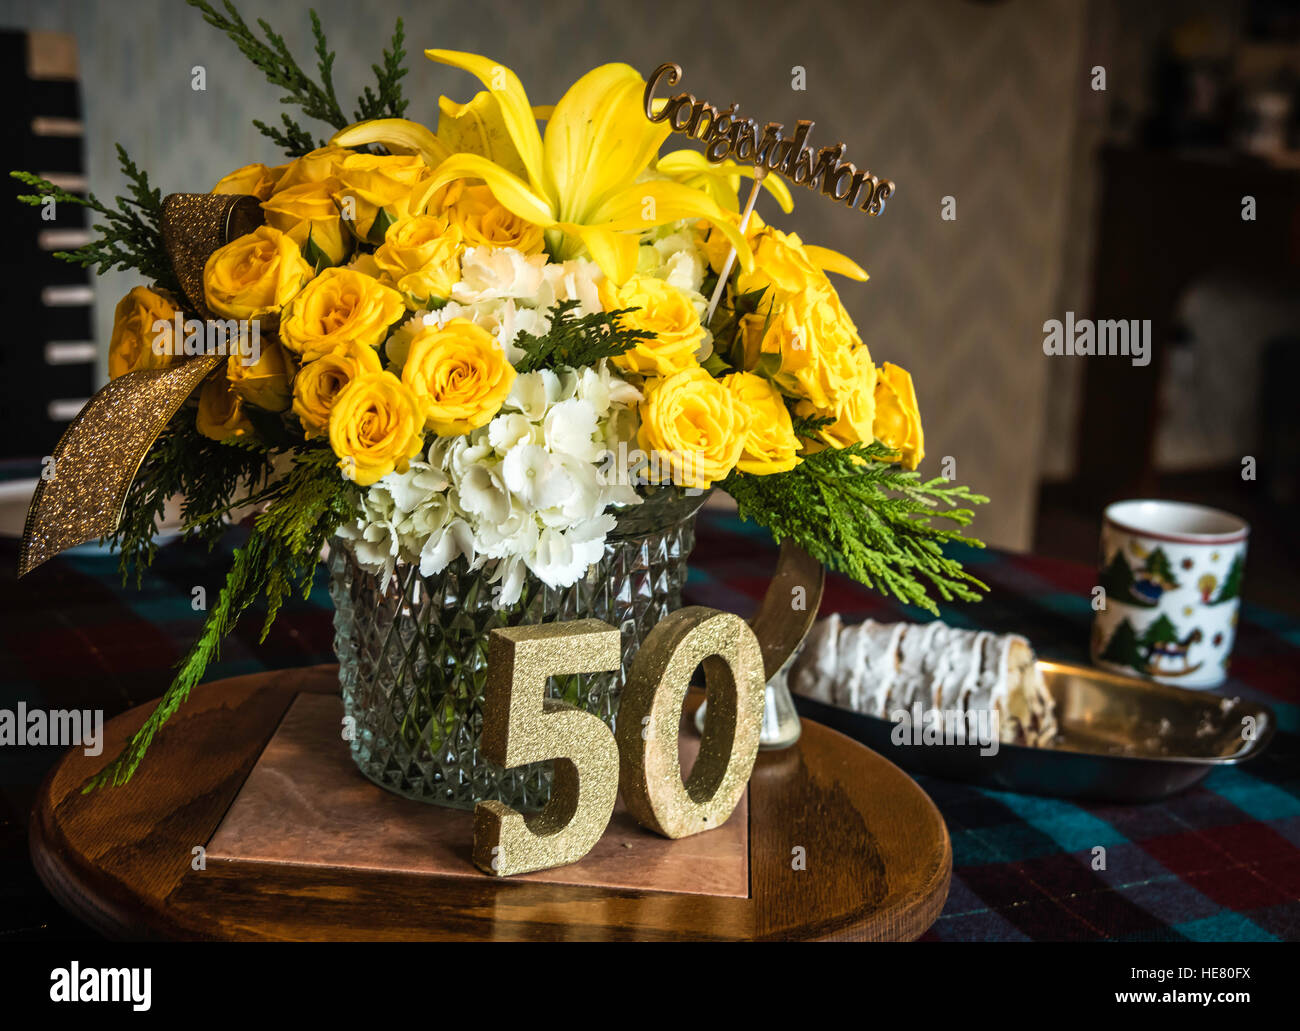 50th Wedding Anniversary Party Stock Photo Alamy